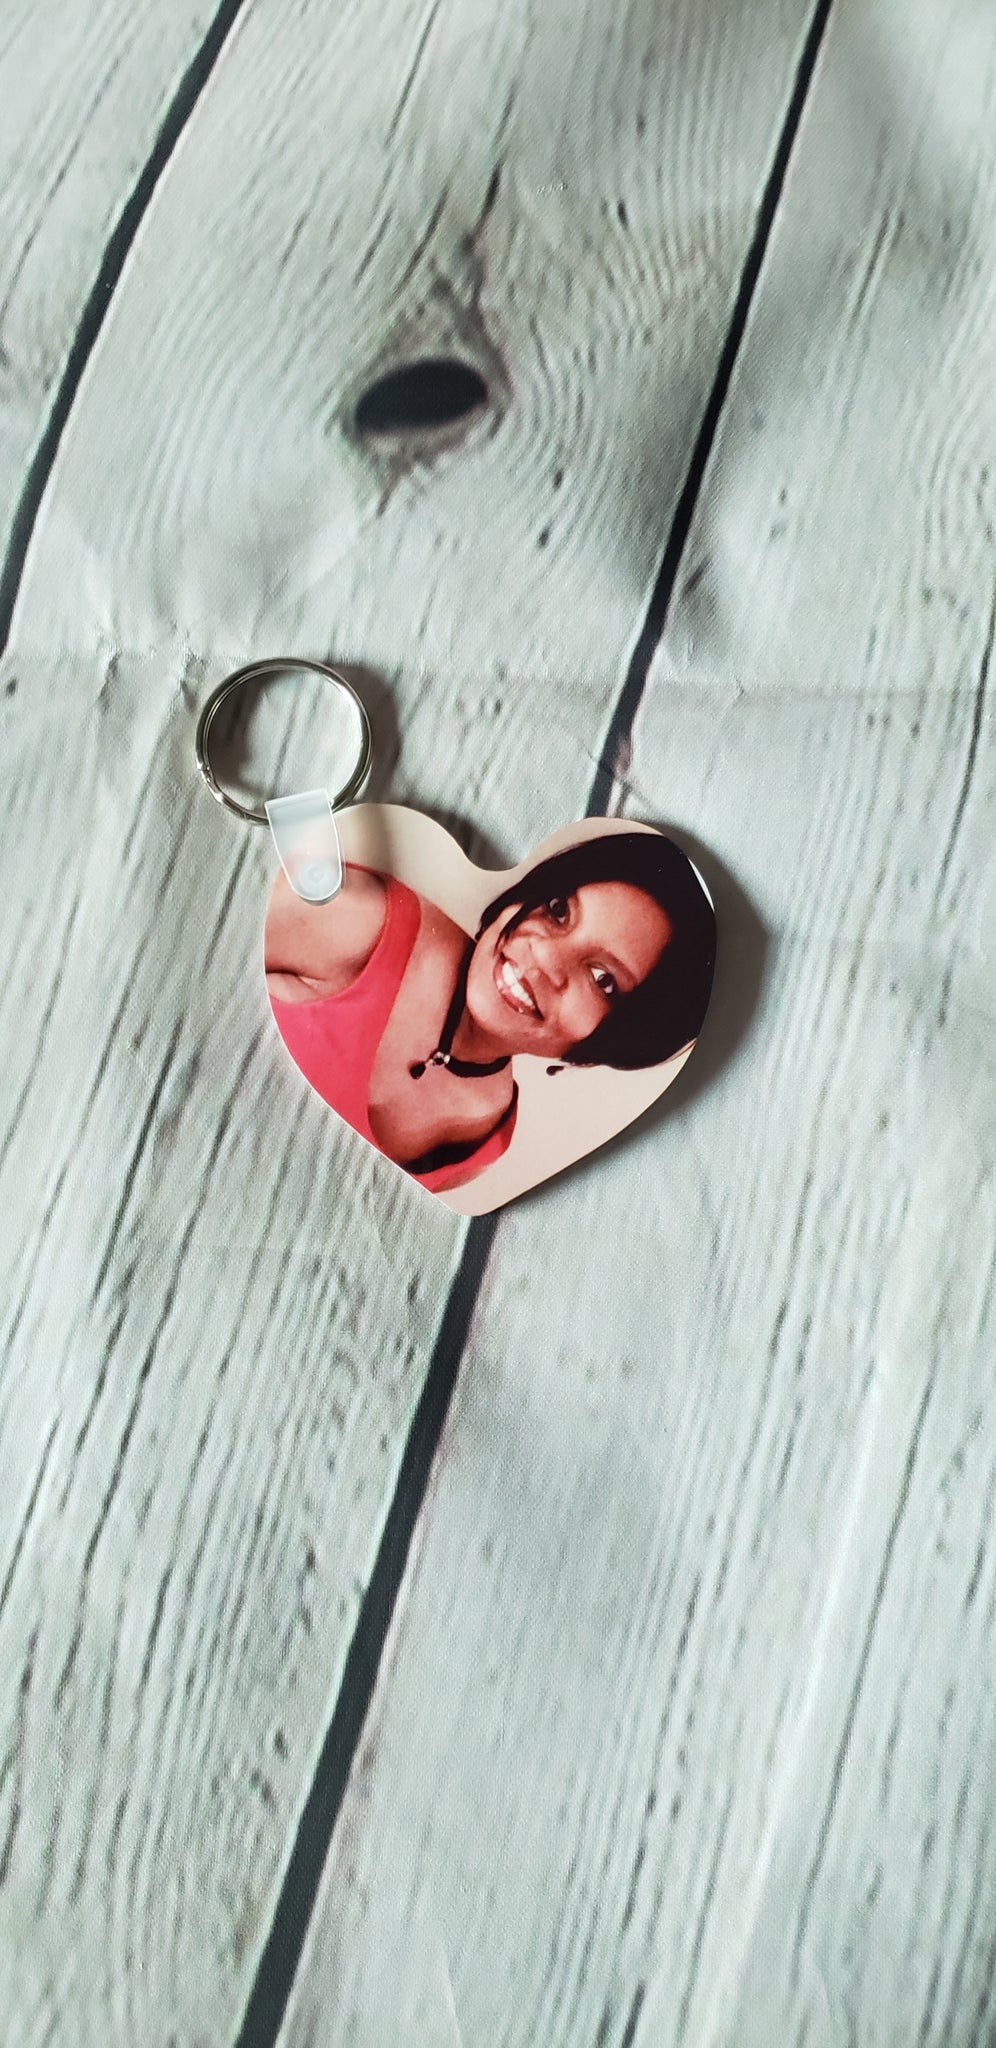 2-Sided Heart Keychain - JVN Creations & Designs